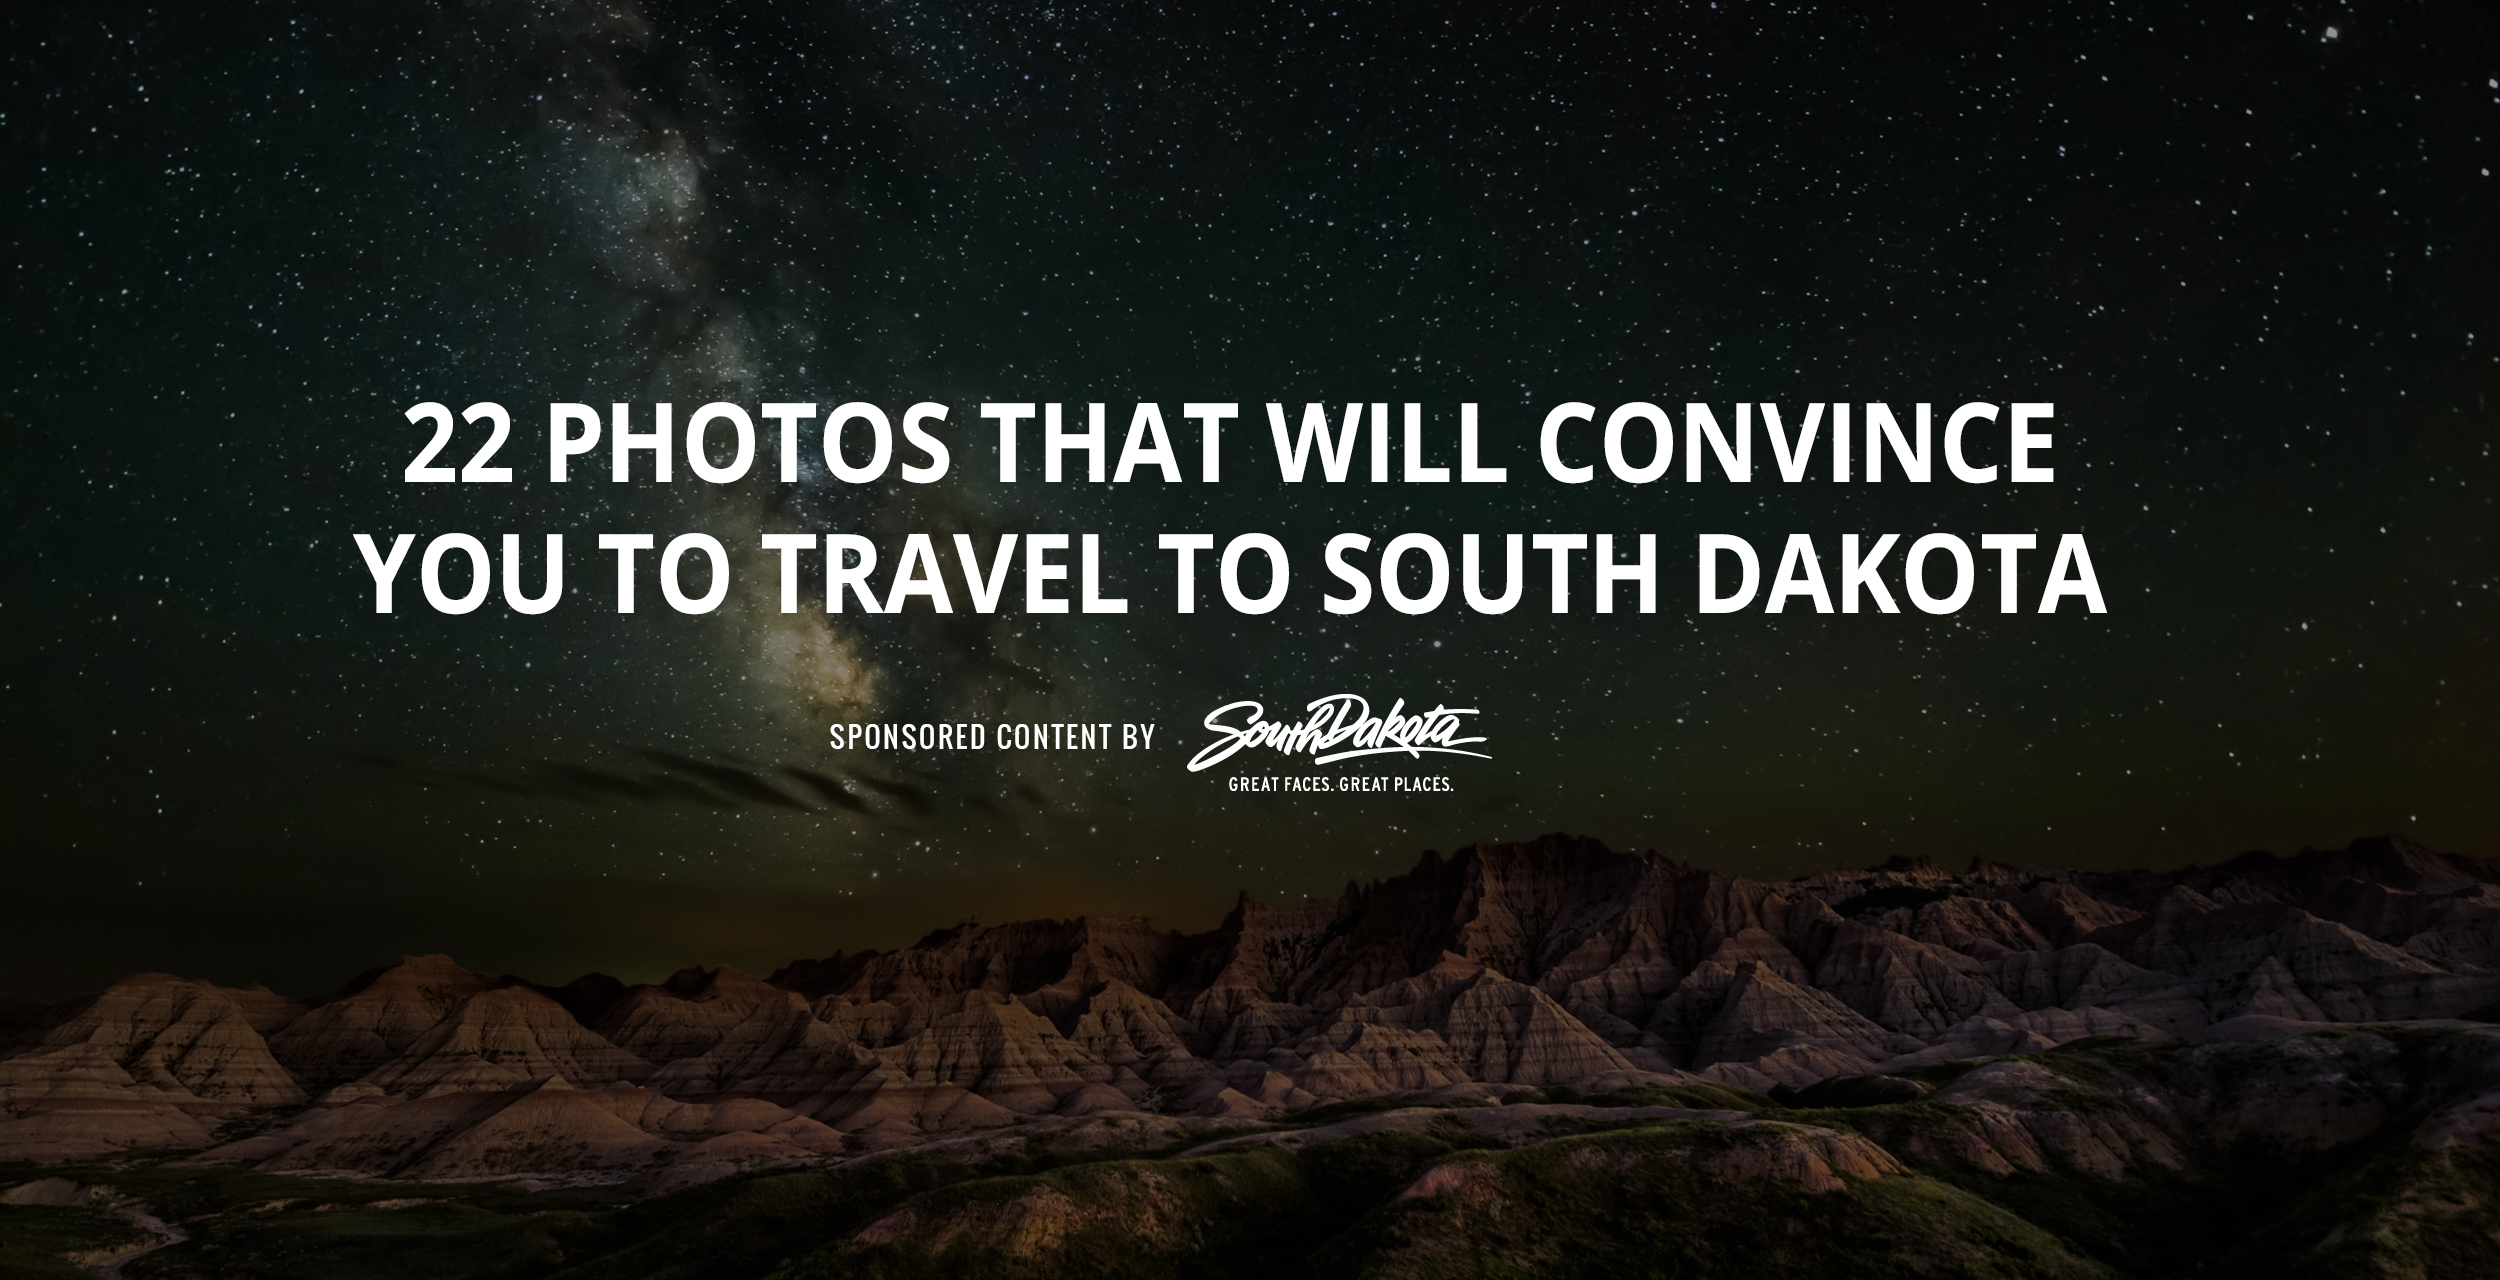 22 photos that will convince you to travel to south dakota now